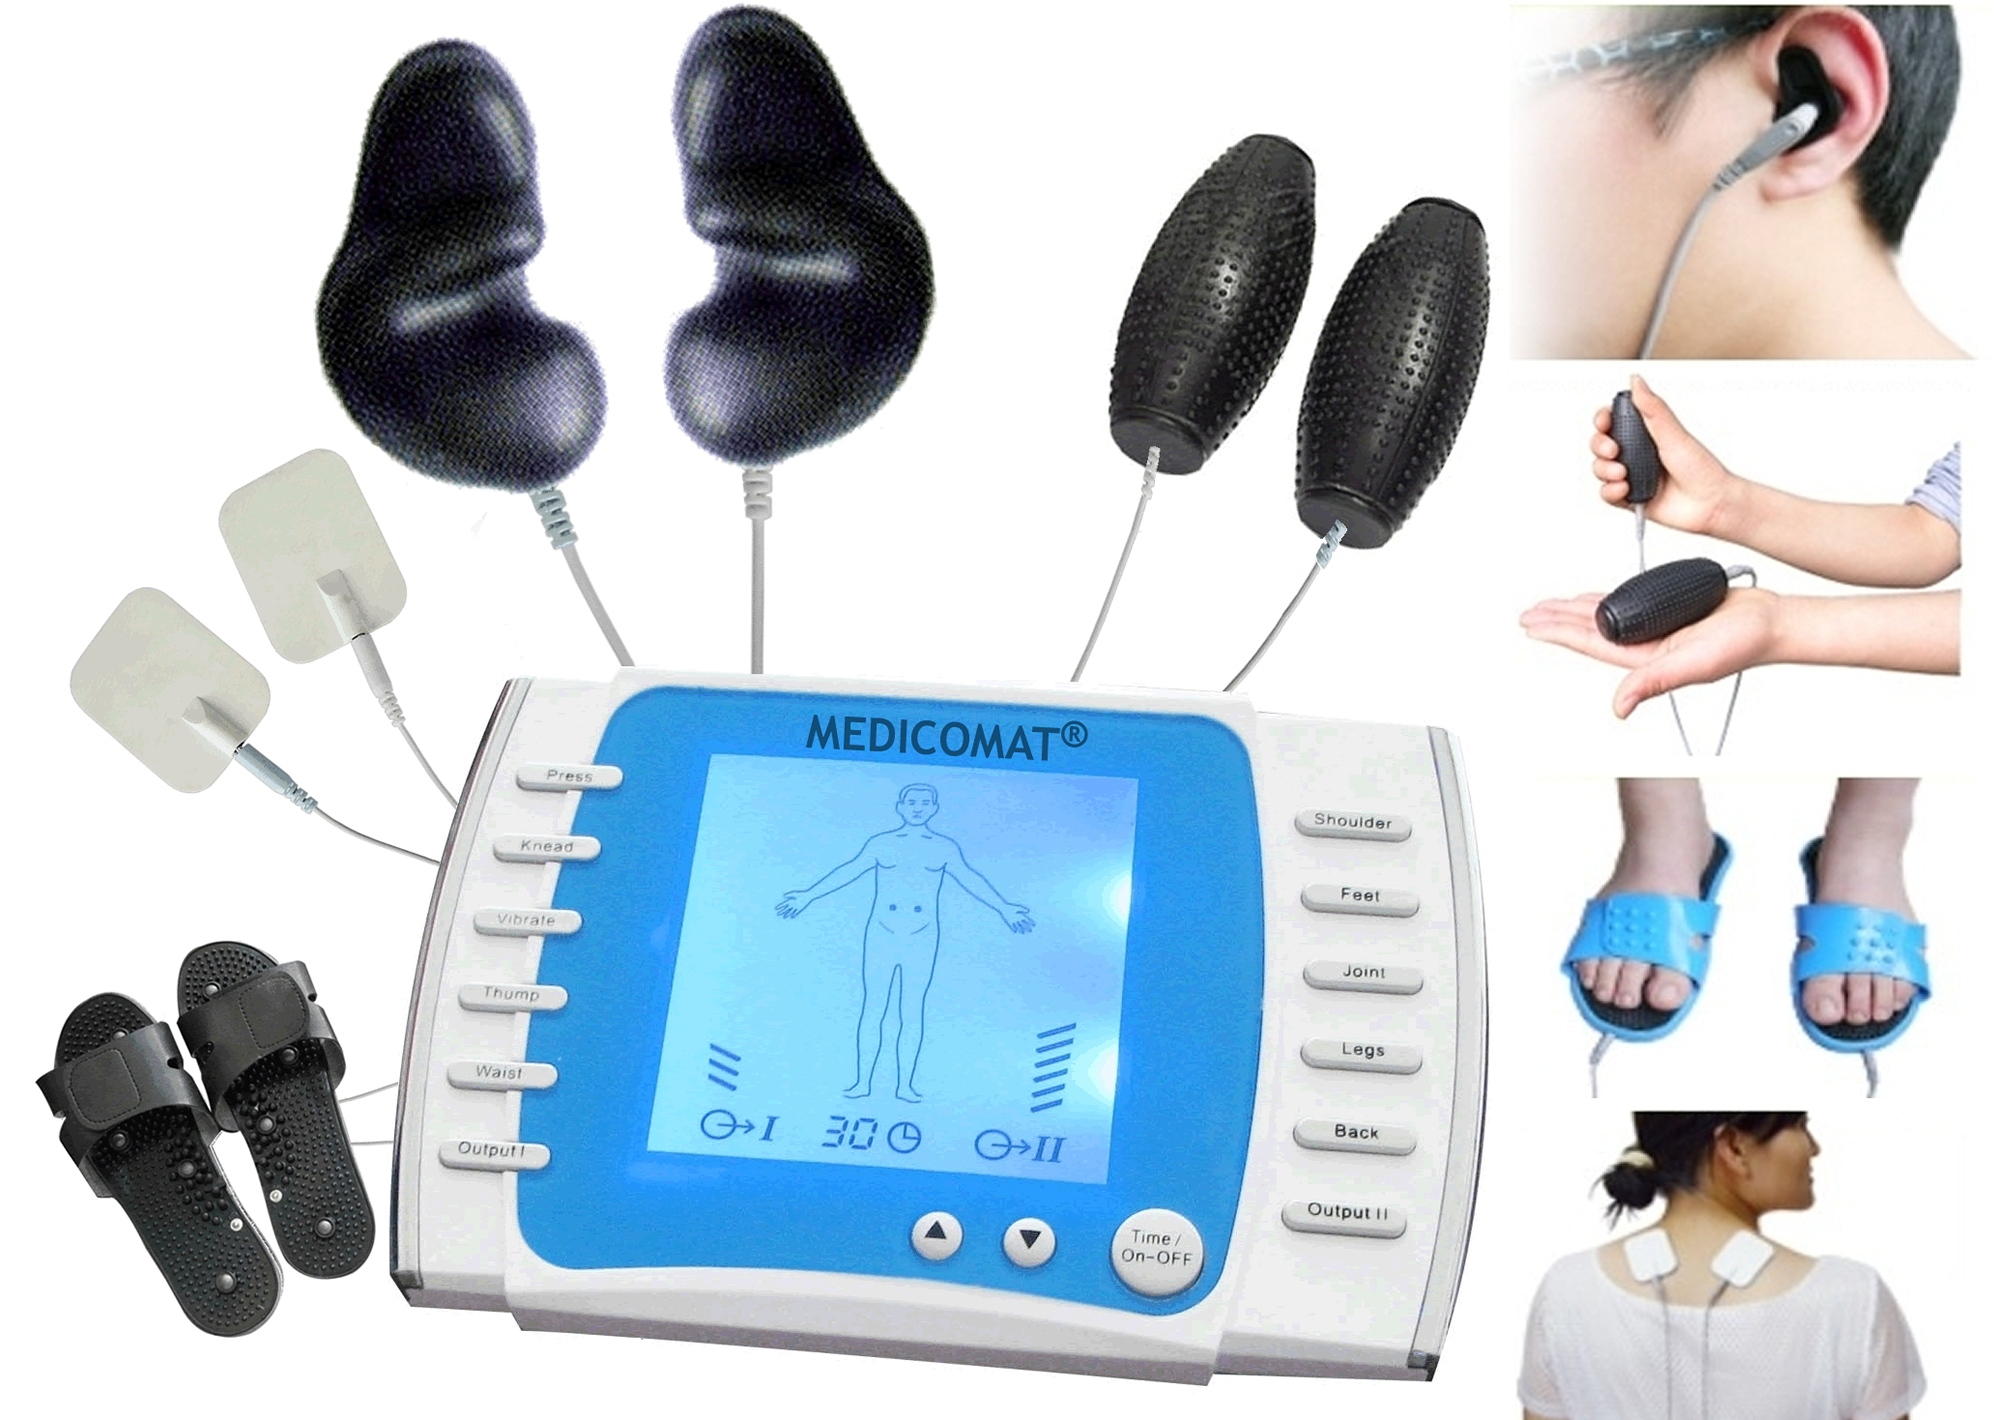 Colour therapy for sciatica - Acupuncture Treatment Device Medicomat 21 Fully Automatic Treatment At Home Pain Disease Relief Remove Fatigue Download Image Colour Therapy